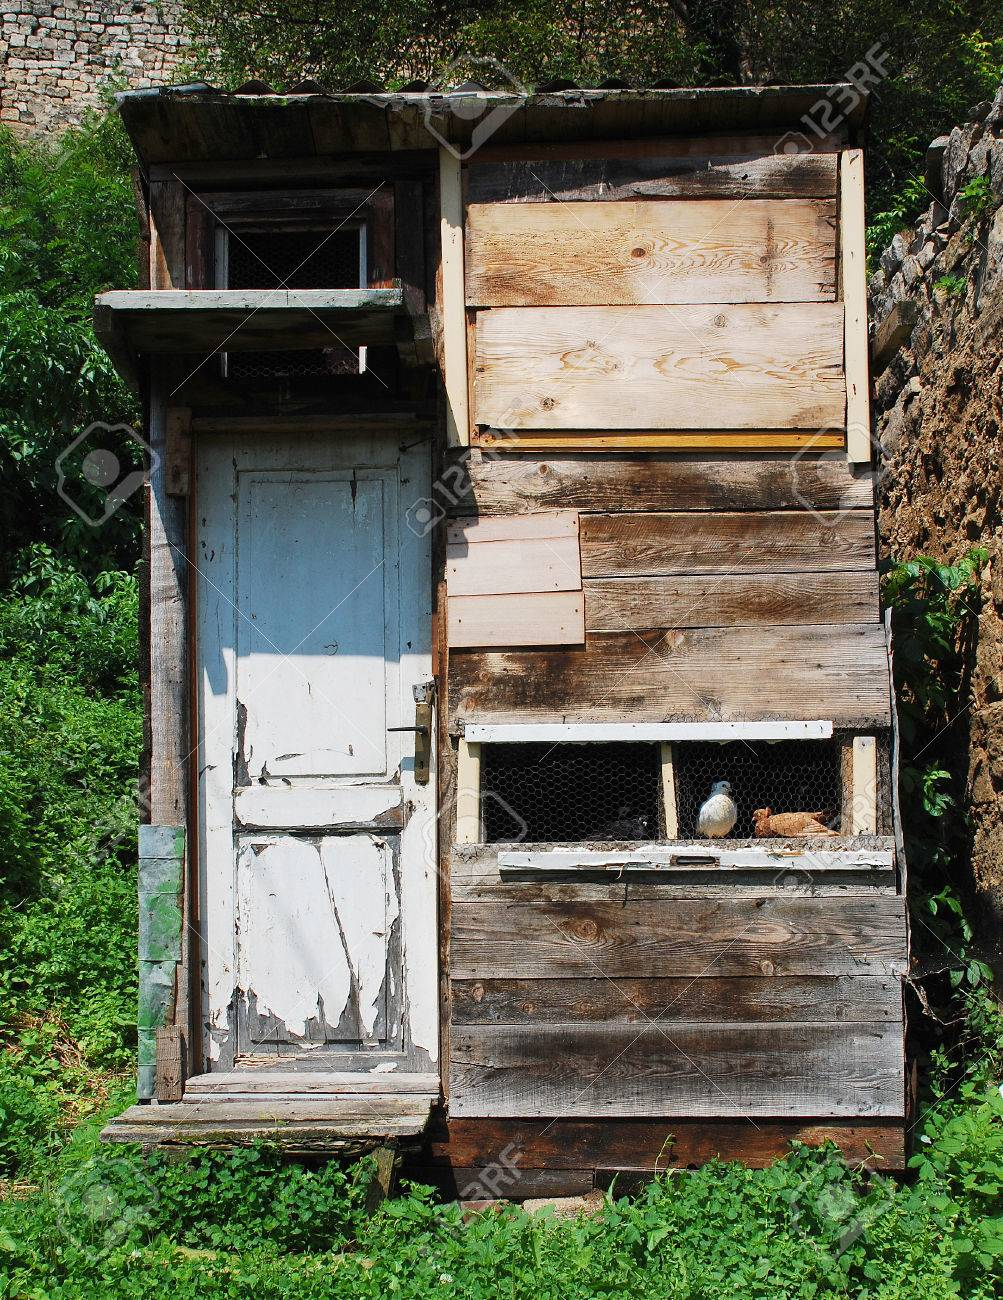 A wooden home-built pigeon coop made from scavenged wood including